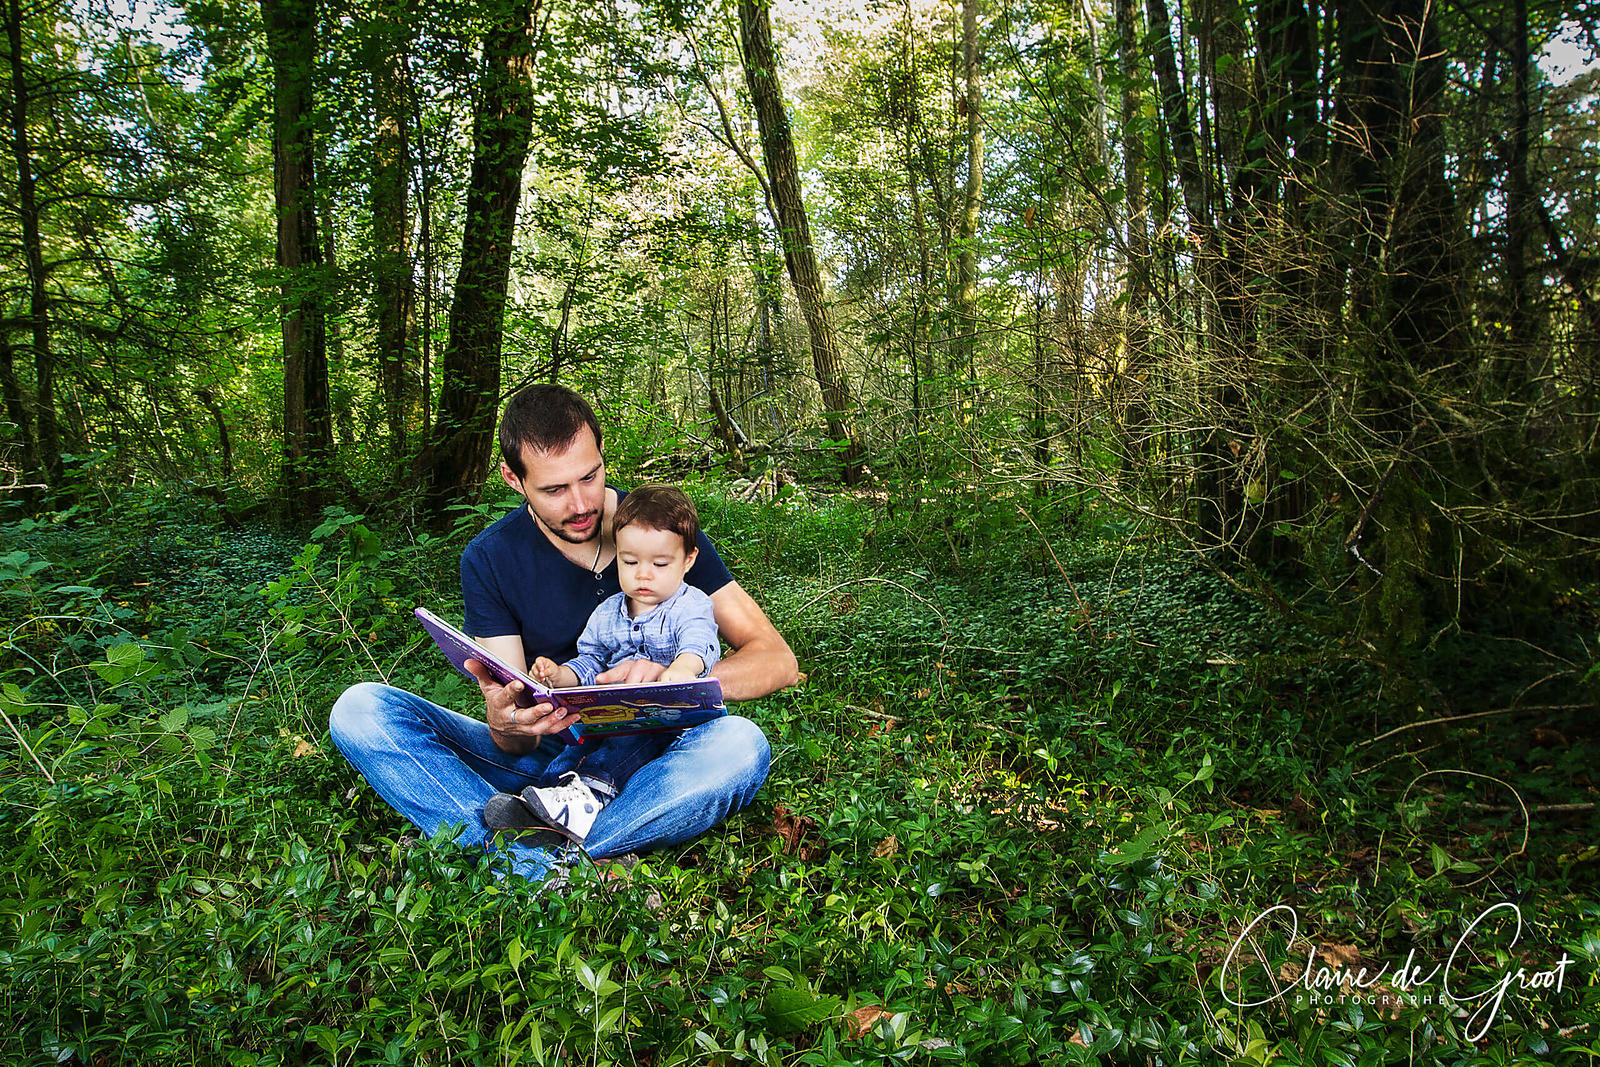 Portrait of a father and son in the forest